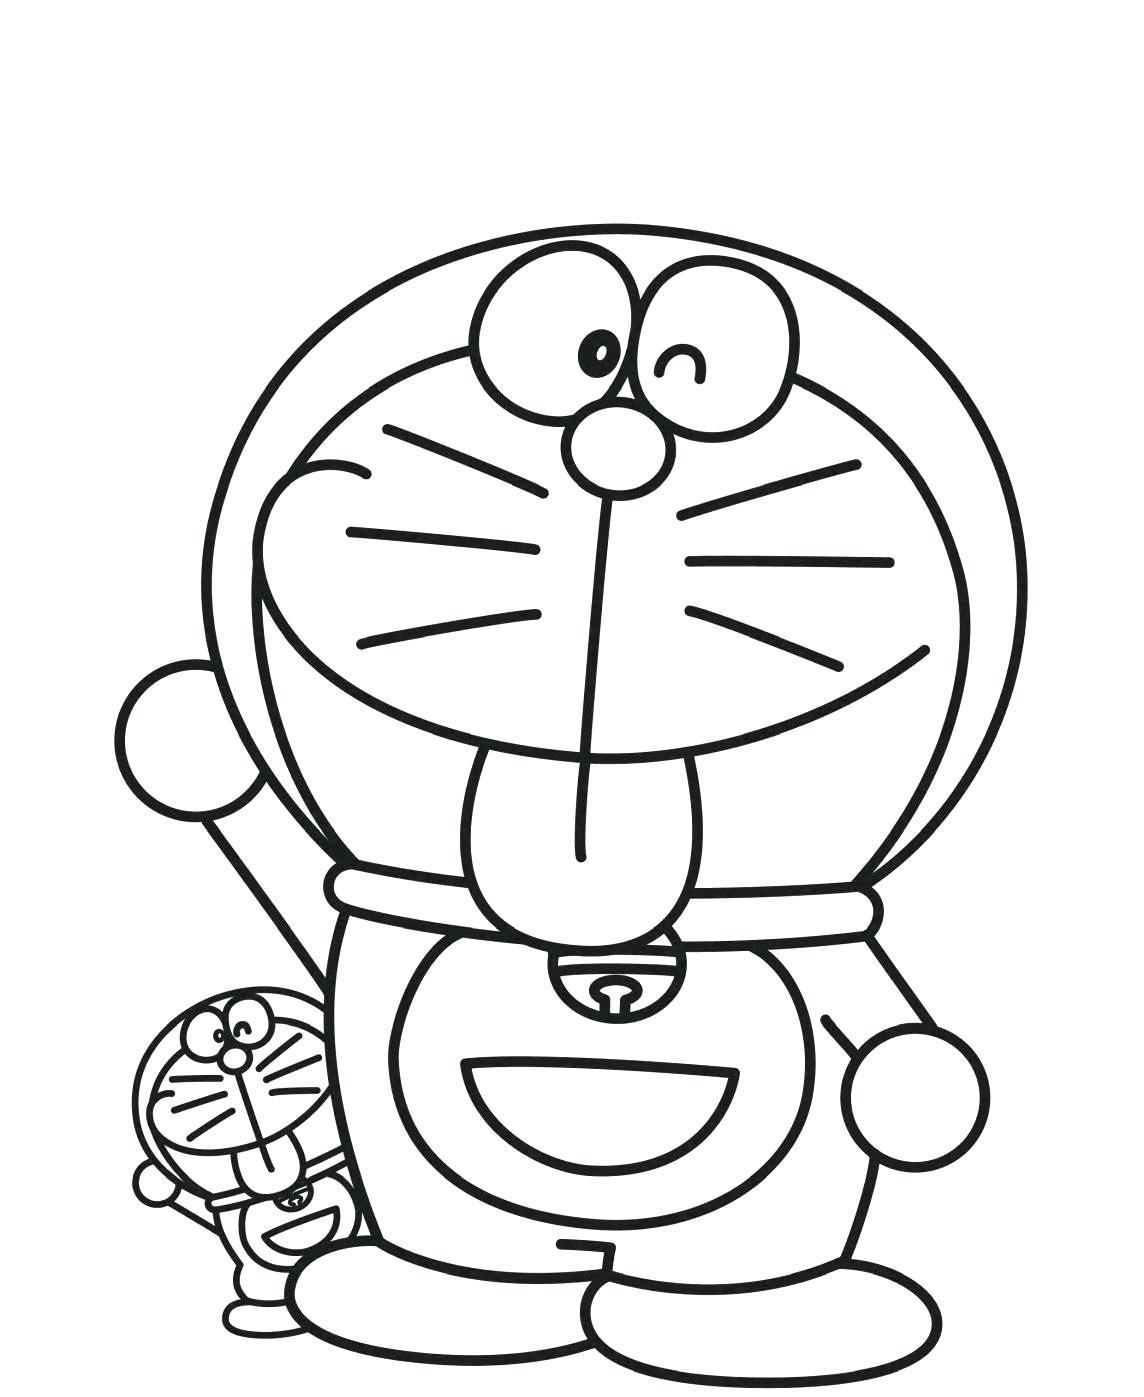 1144x1397 Unbelievable Domo Coloring Pages Pic Of Milkshake Popular